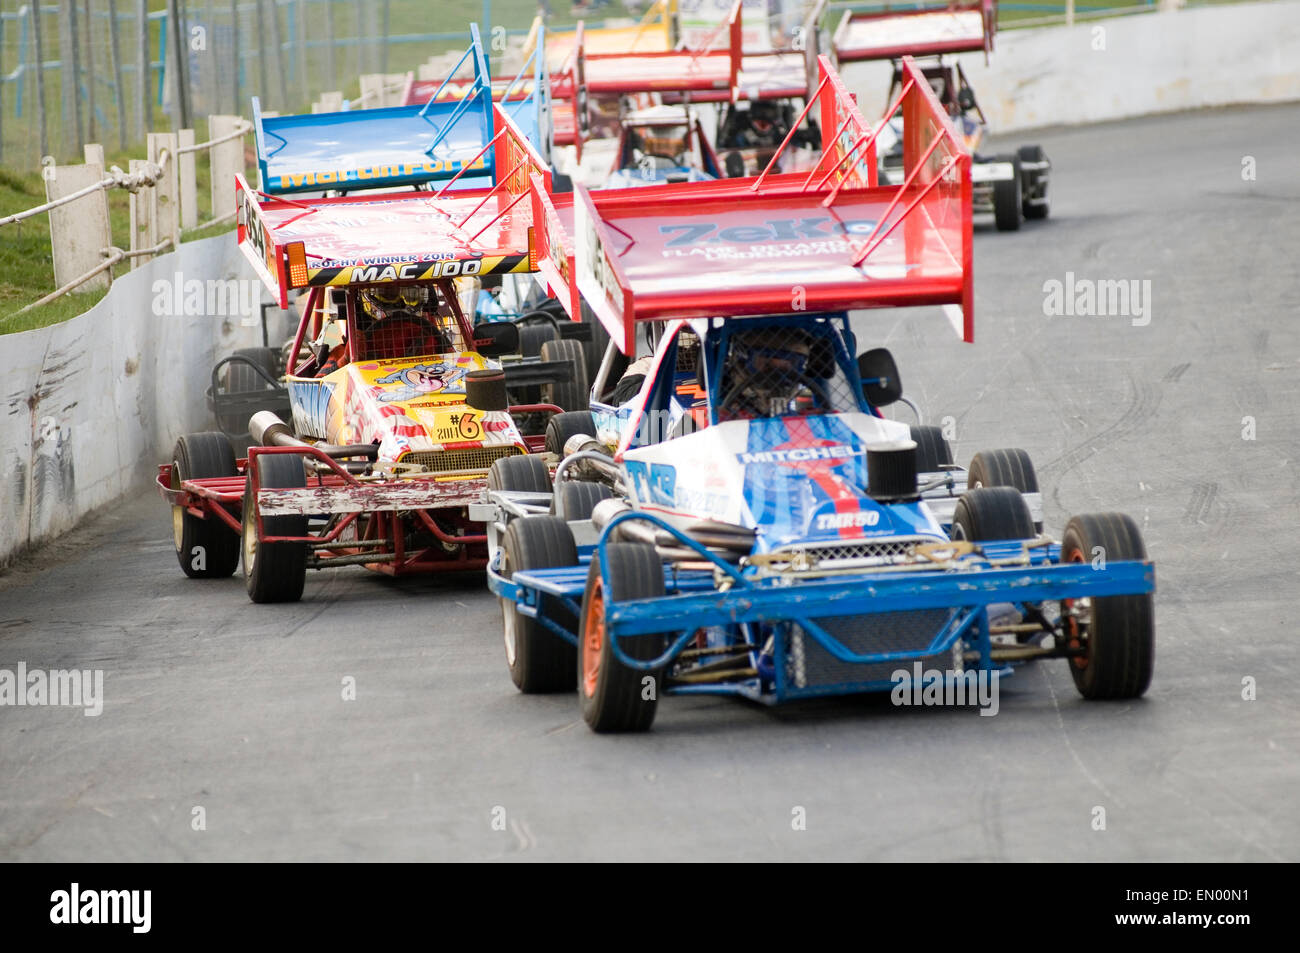 f2 formula two 2 stock car cars race races racing oval track wing wings downforce open wheeled tarmac short motor - Stock Image